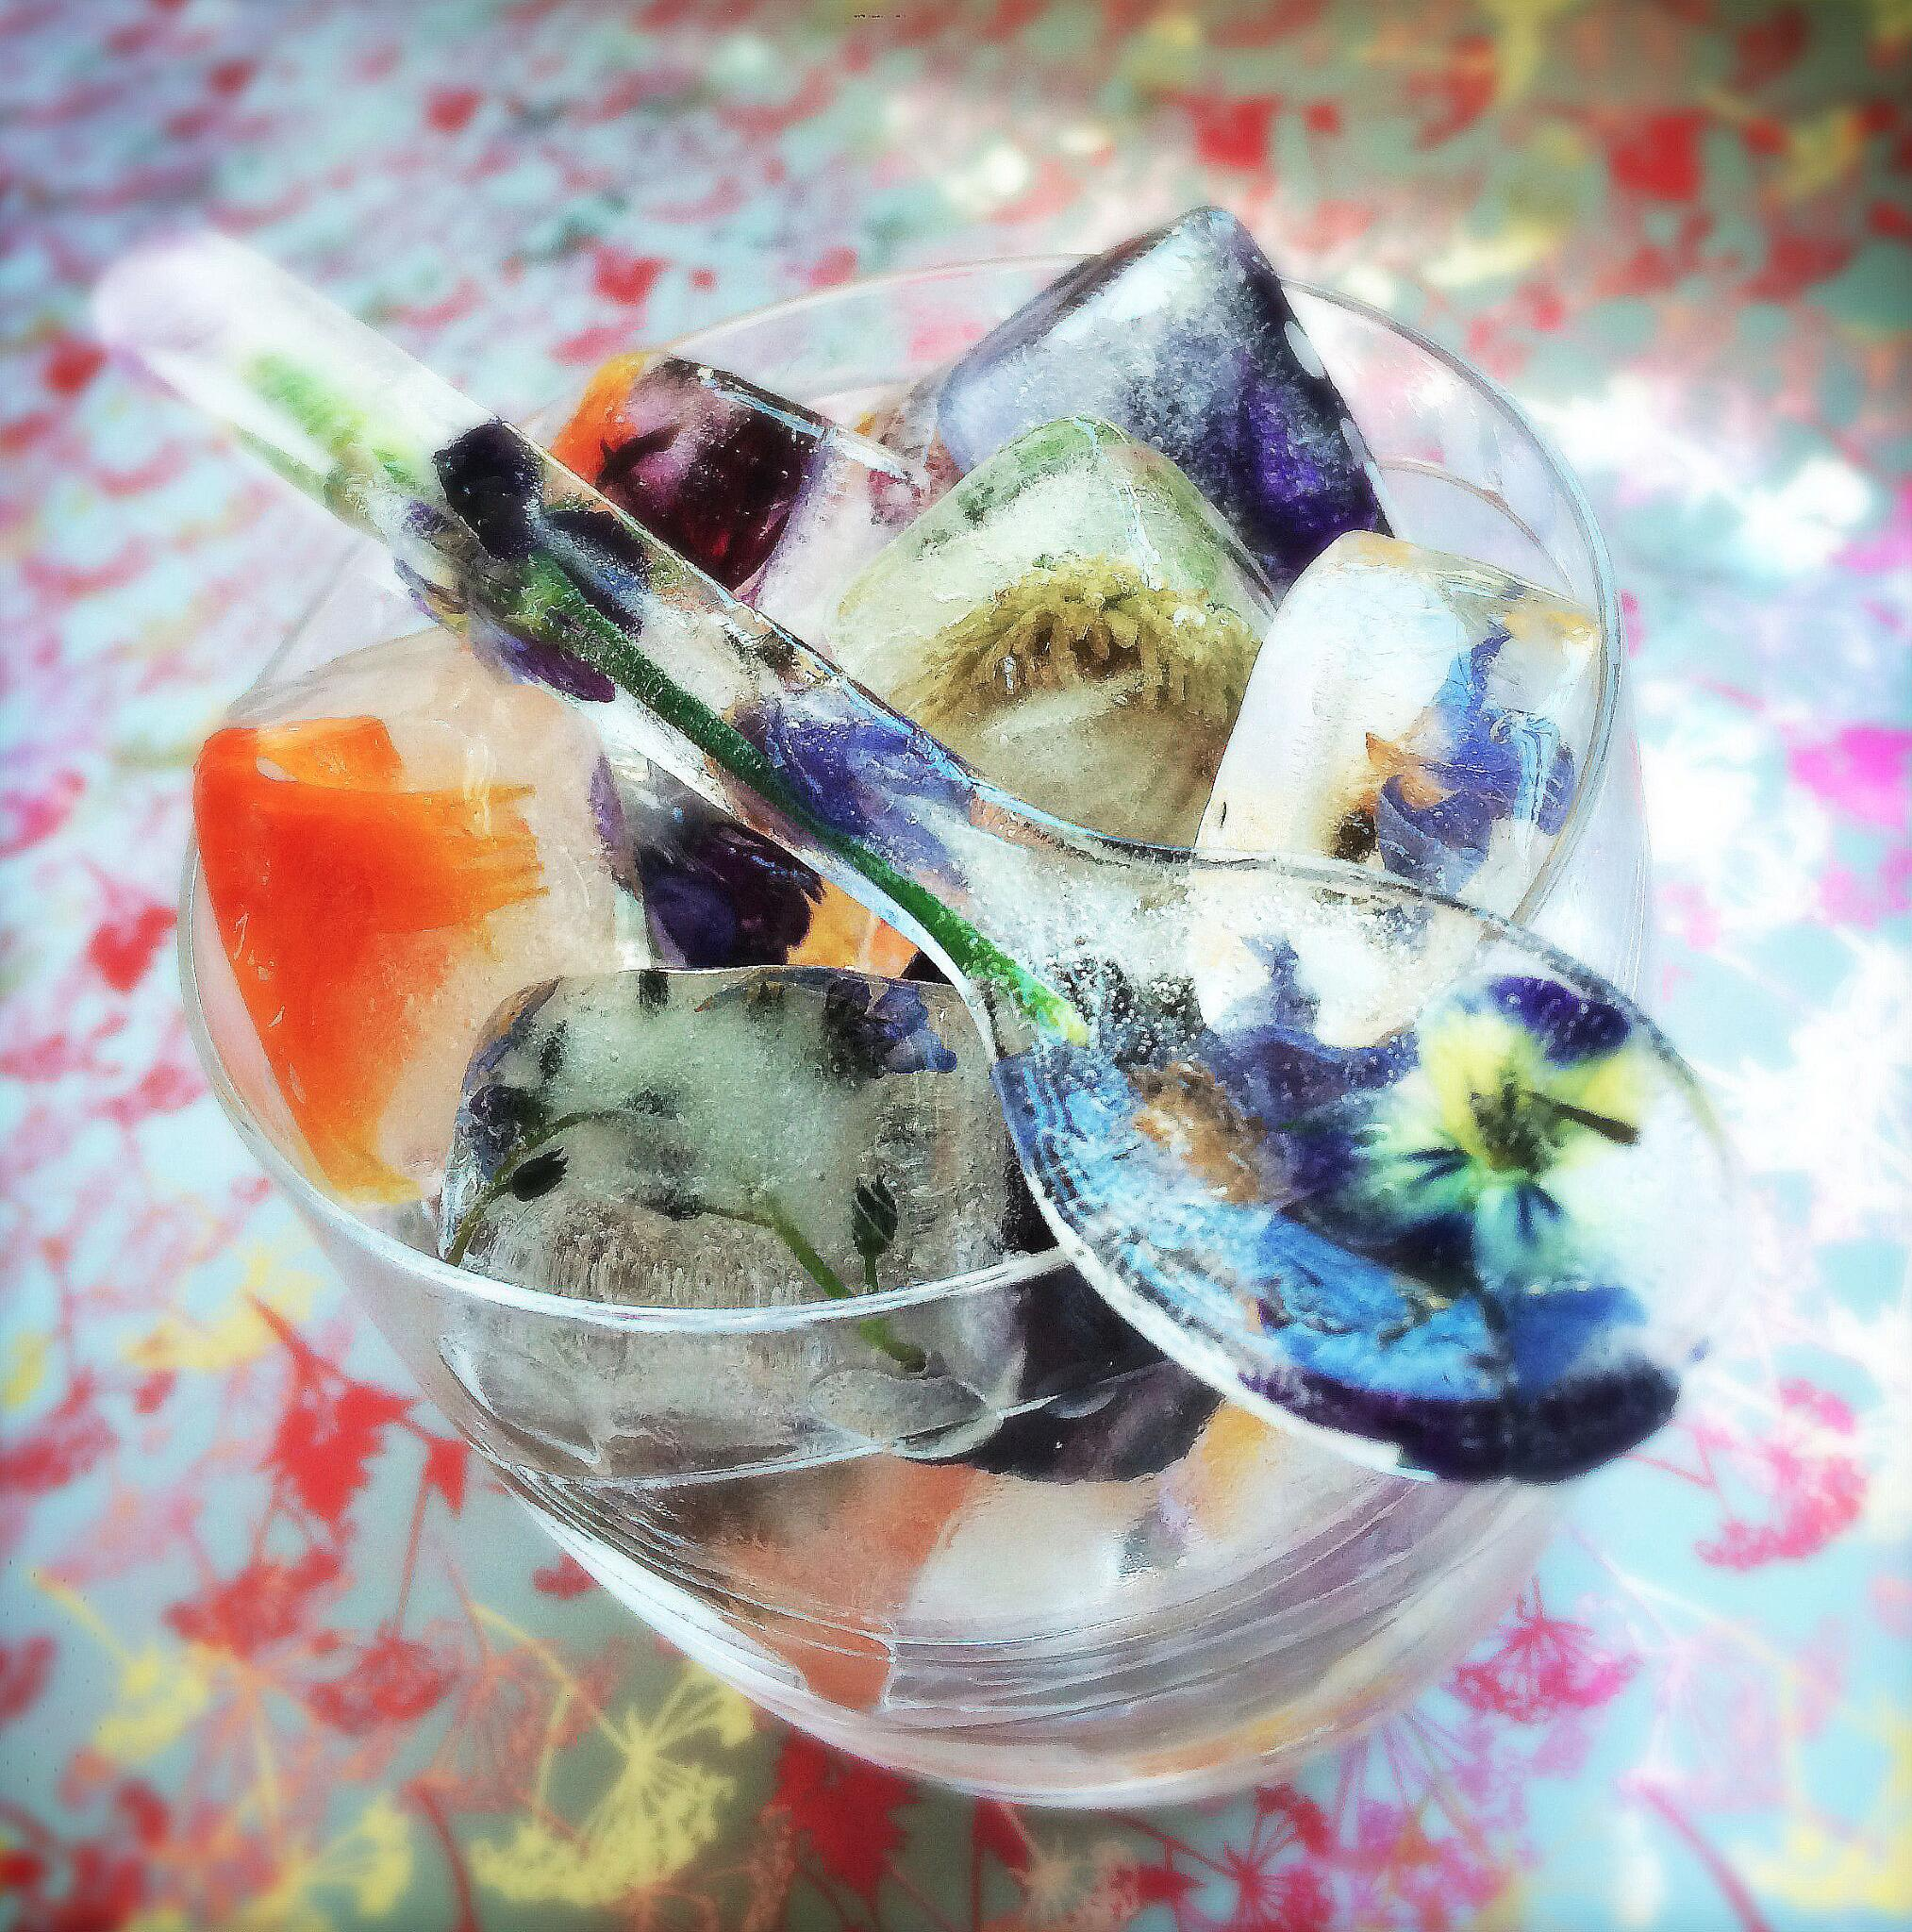 RT @KatieJHardie: @TelegraphFood The weekend is near - Having fun experimenting with my edible flowers! #ShakenAndStirred #Letsparty http:/…